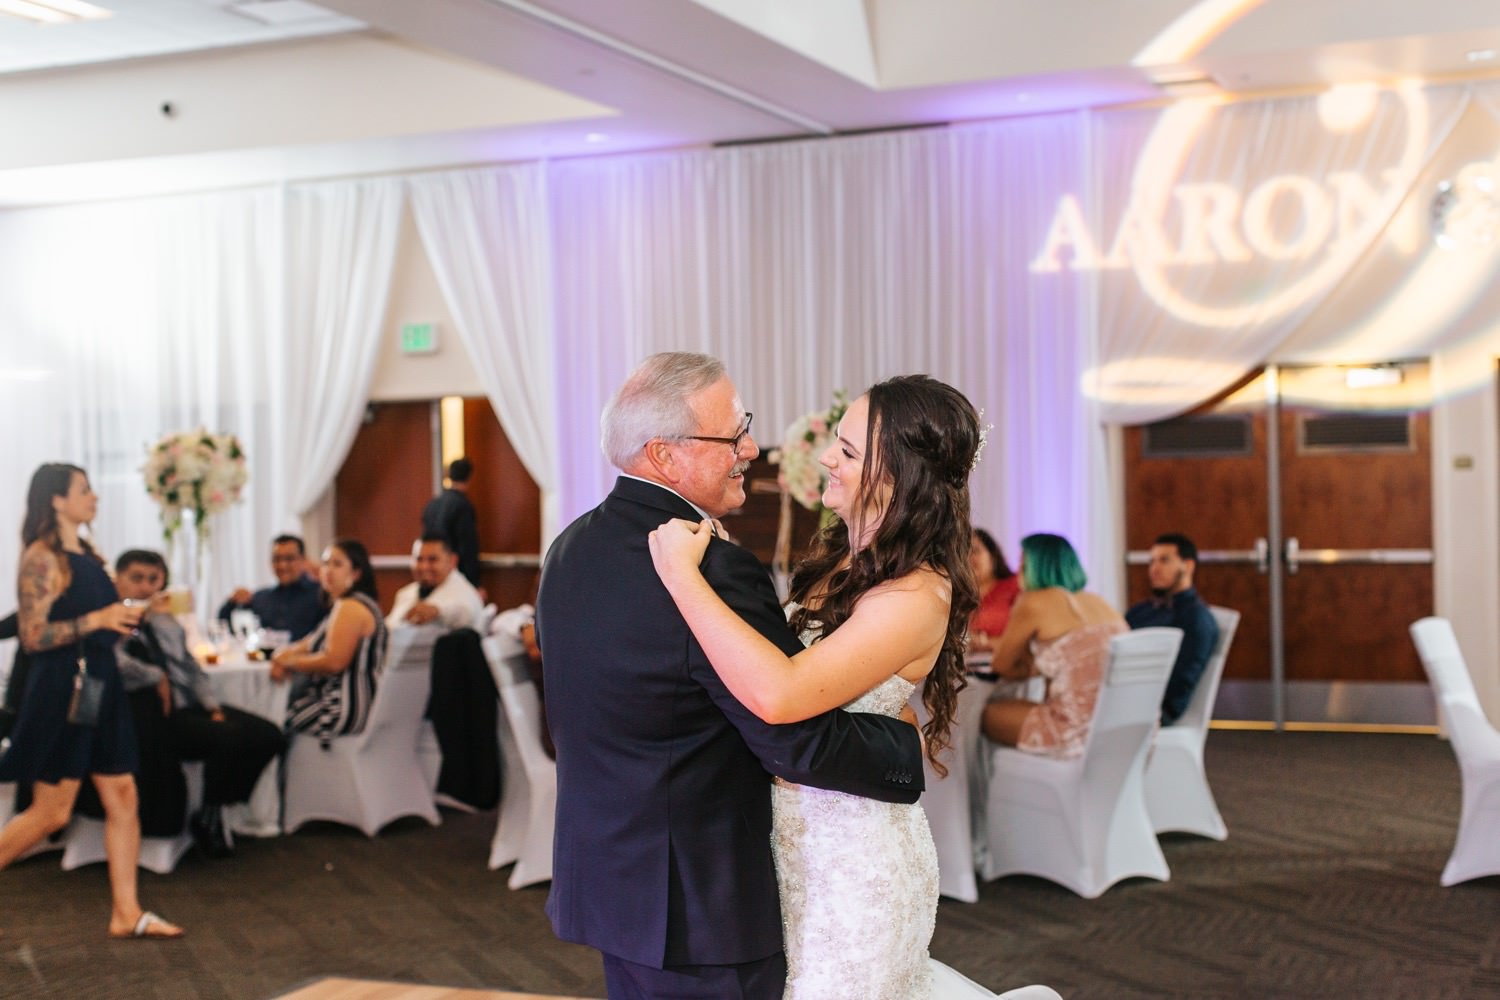 Bride dances with her father - father daughter dance - https://brittneyhannonphotography.com